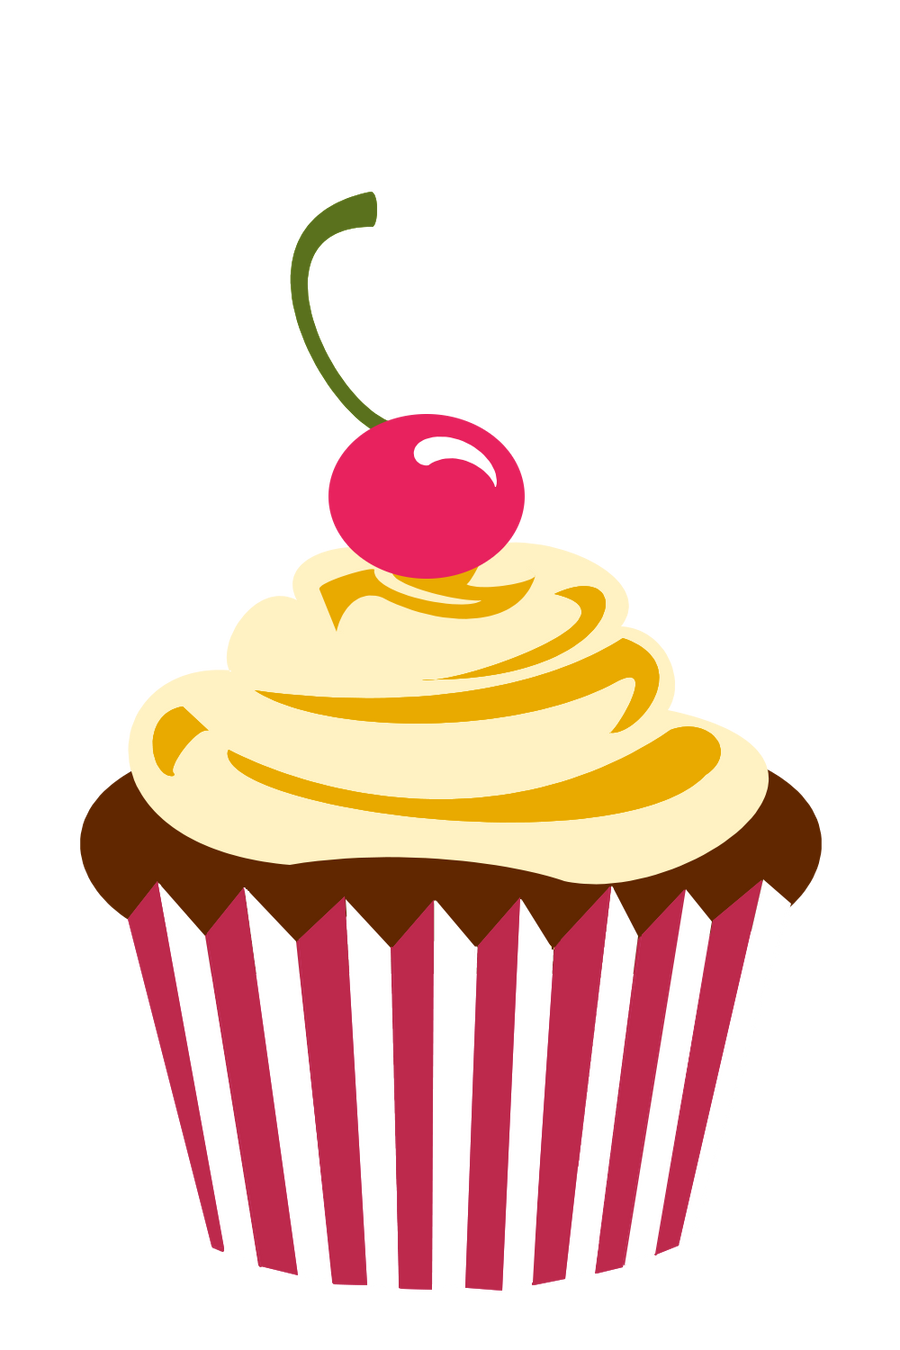 Cherry Chocolate Cupcake By F A On DeviantART